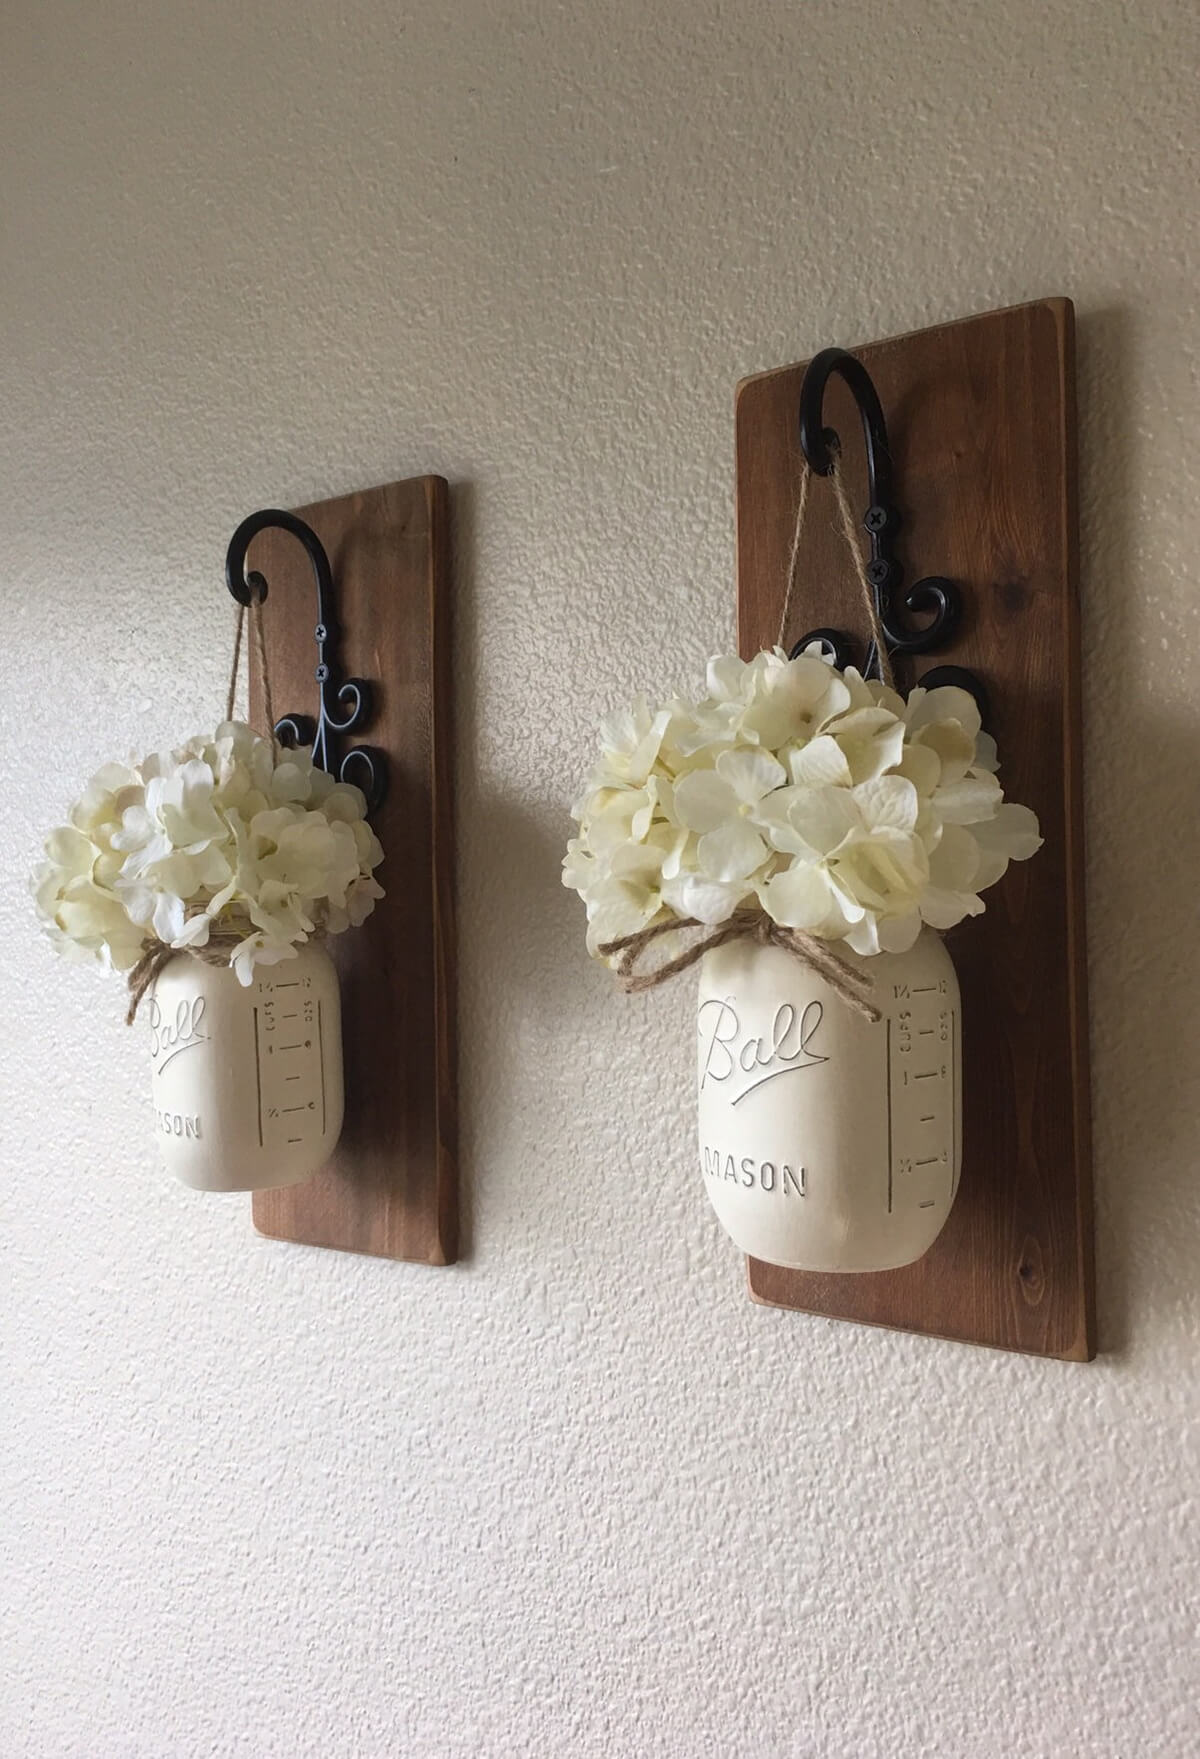 Wooden Wall Hangings with Iron Hooks and Ball Jars